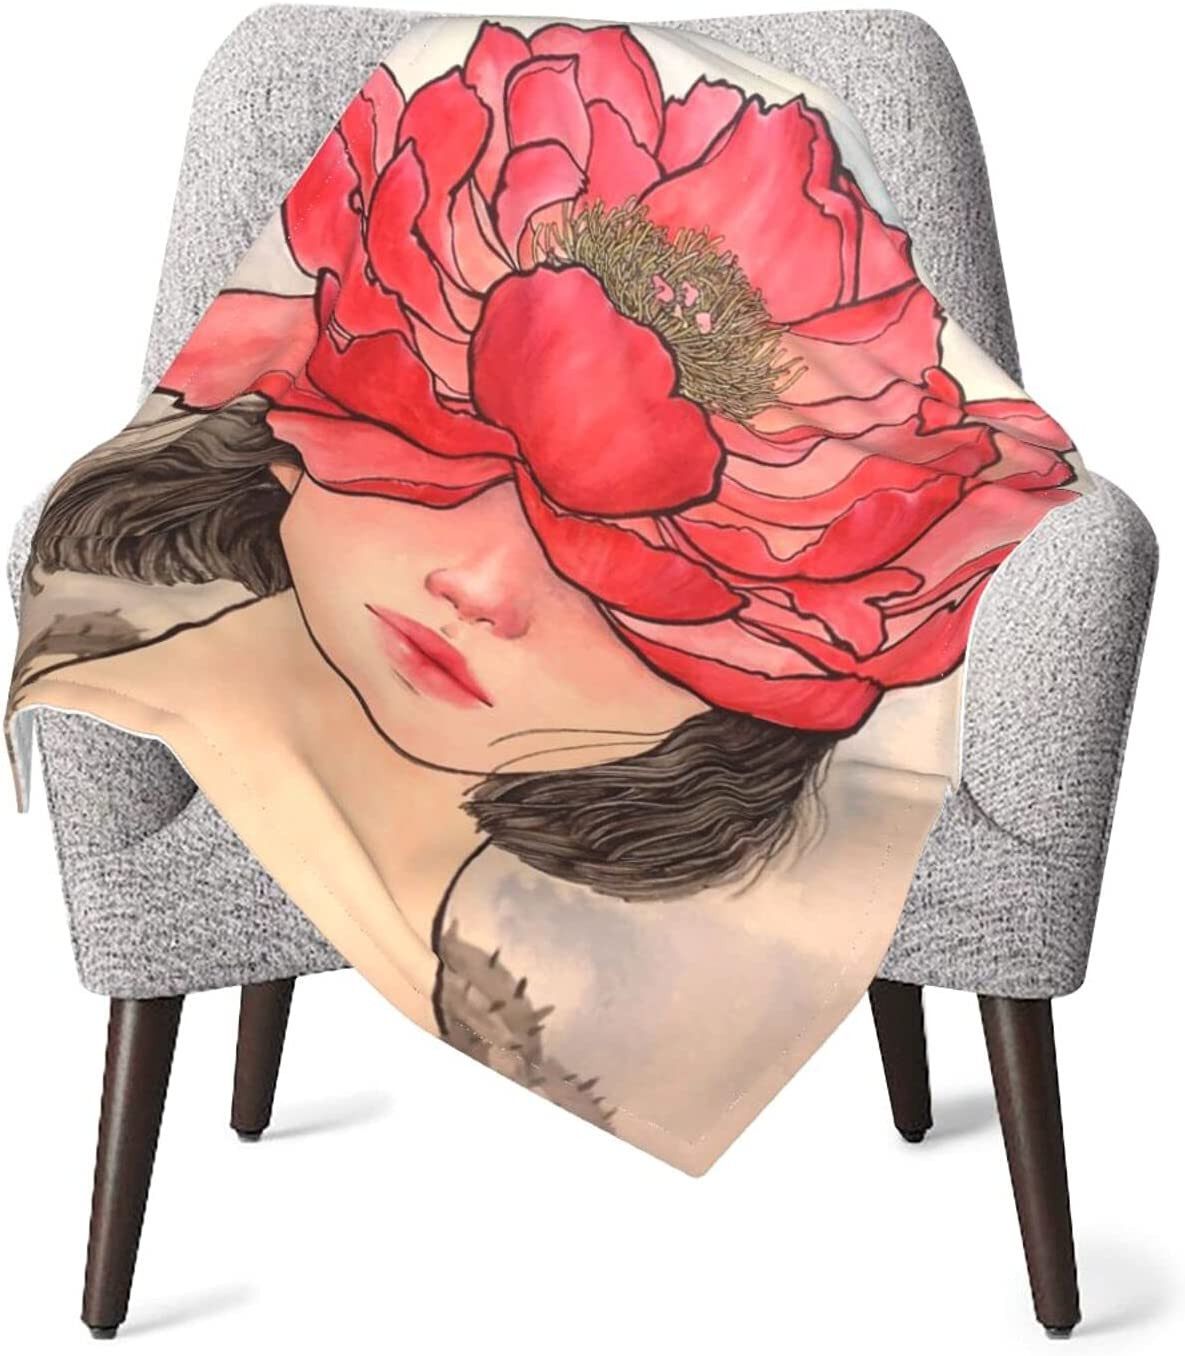 Austin Mall Baby Blanket Beautiful Woman Girl Bed Nursery Max 57% OFF Bl Wearing Flowers